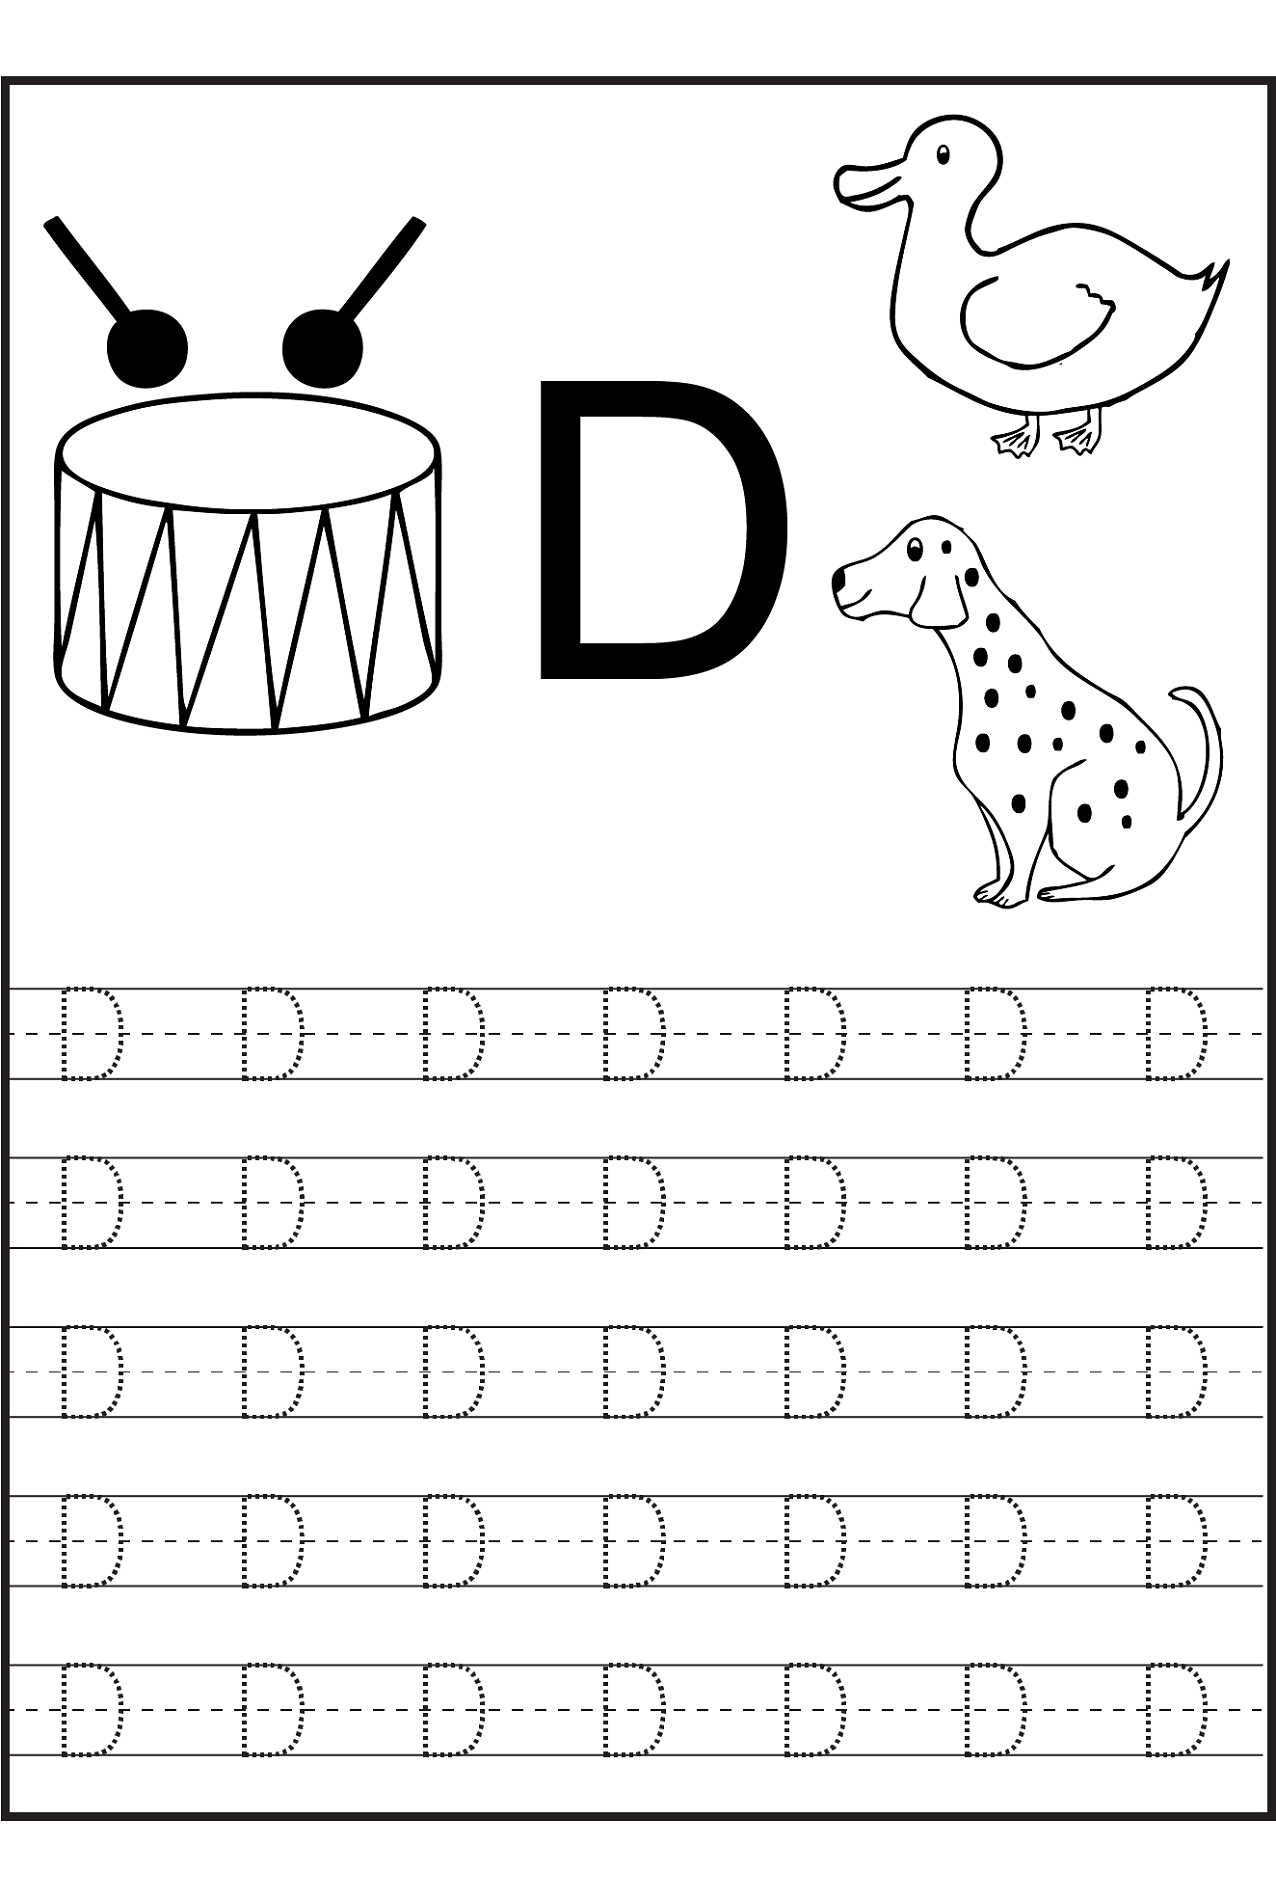 Trace Letter D Worksheets | Activity Shelter within D Letter Tracing